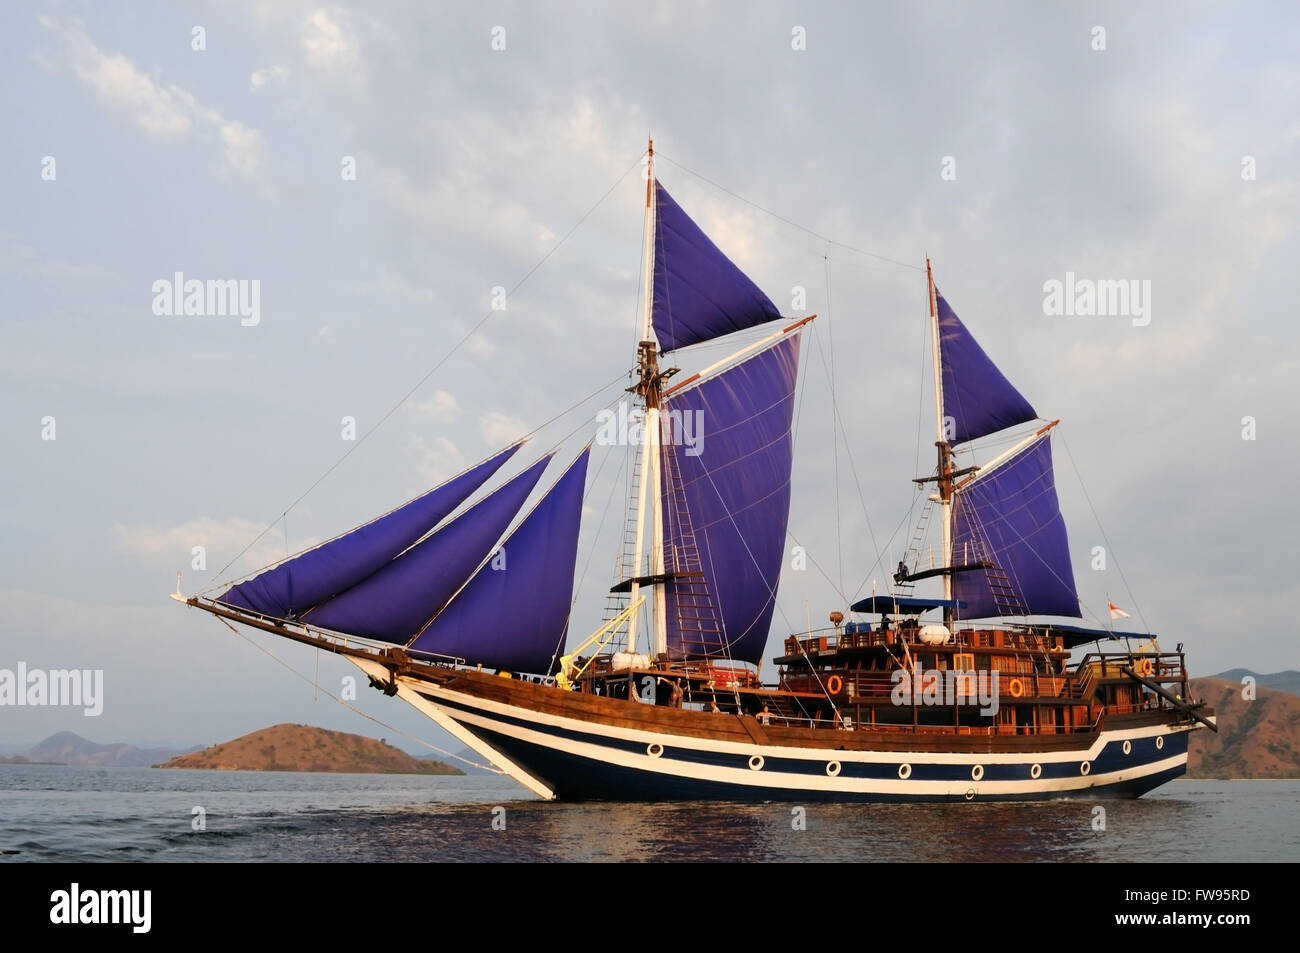 Sailboat with hoisted sails, Indonesia - Stock Image